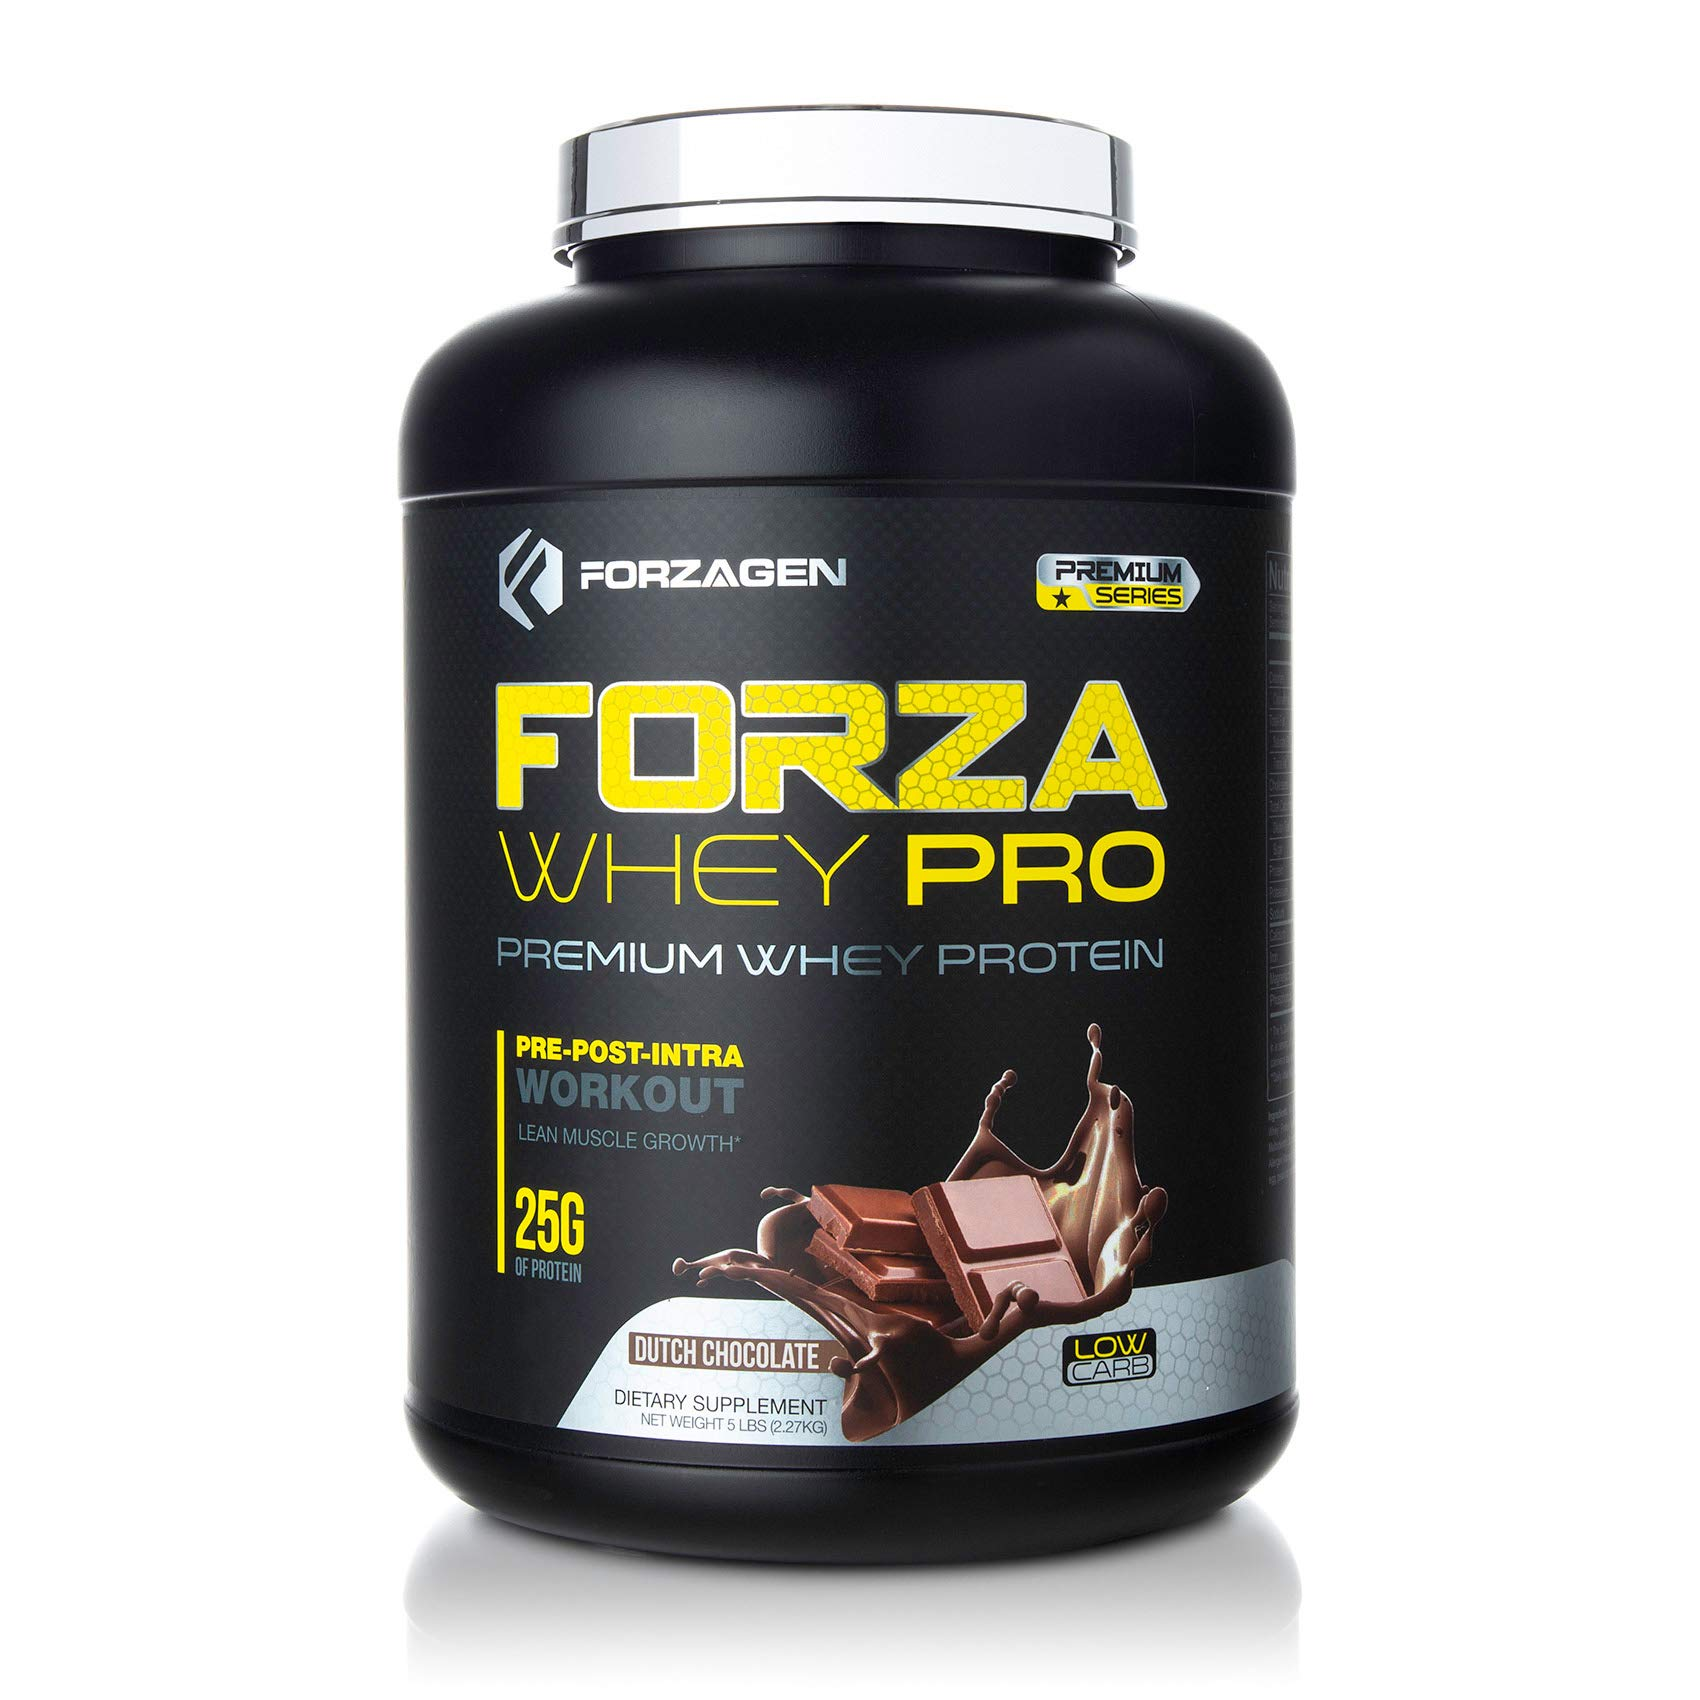 Forzagen Protein Powder 5lb - Best Whey Protein | Weight Gainer | Increase Muscle Mass | Meal Replacement Shakes | Low Carb Protein Powder | Pre Workout and Post Workout Dutch Chocolate